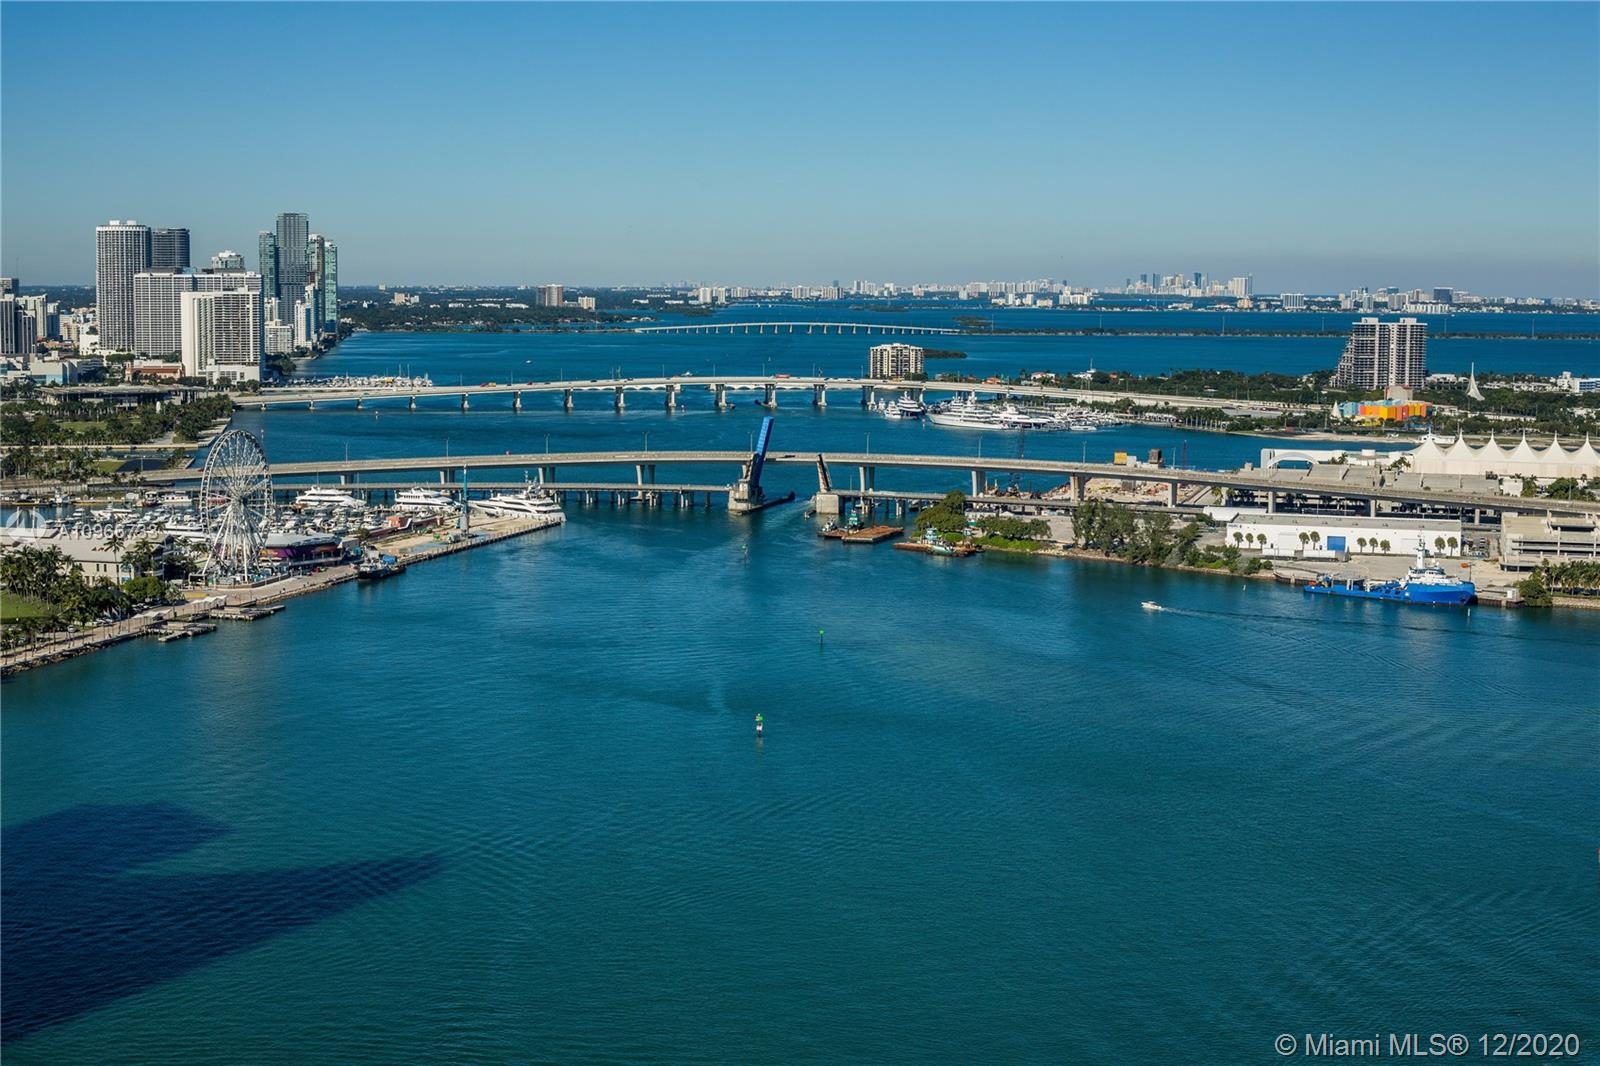 Stunning 3 bedrooms / 3.5 bathrooms unit at Three Tequesta Point! Enjoy unobstructed views of the bay, skyline, Miami River and much more! Balconies are spread throughout the unit for you to enjoy each and every view that this unit offers. Master bedroom is very large with a huge walk in closet and includes a spacious bathroom. The other two bedrooms are located on the other side of the unit giving the master bedroom complete privacy. Three Tequesta Point offers incredible amenities including a tennis court (with lights for nighttime play), massive gym and pool, ample bbq area and much more. Unit also features 2 parking spaces right next to each other and close to the elevator.